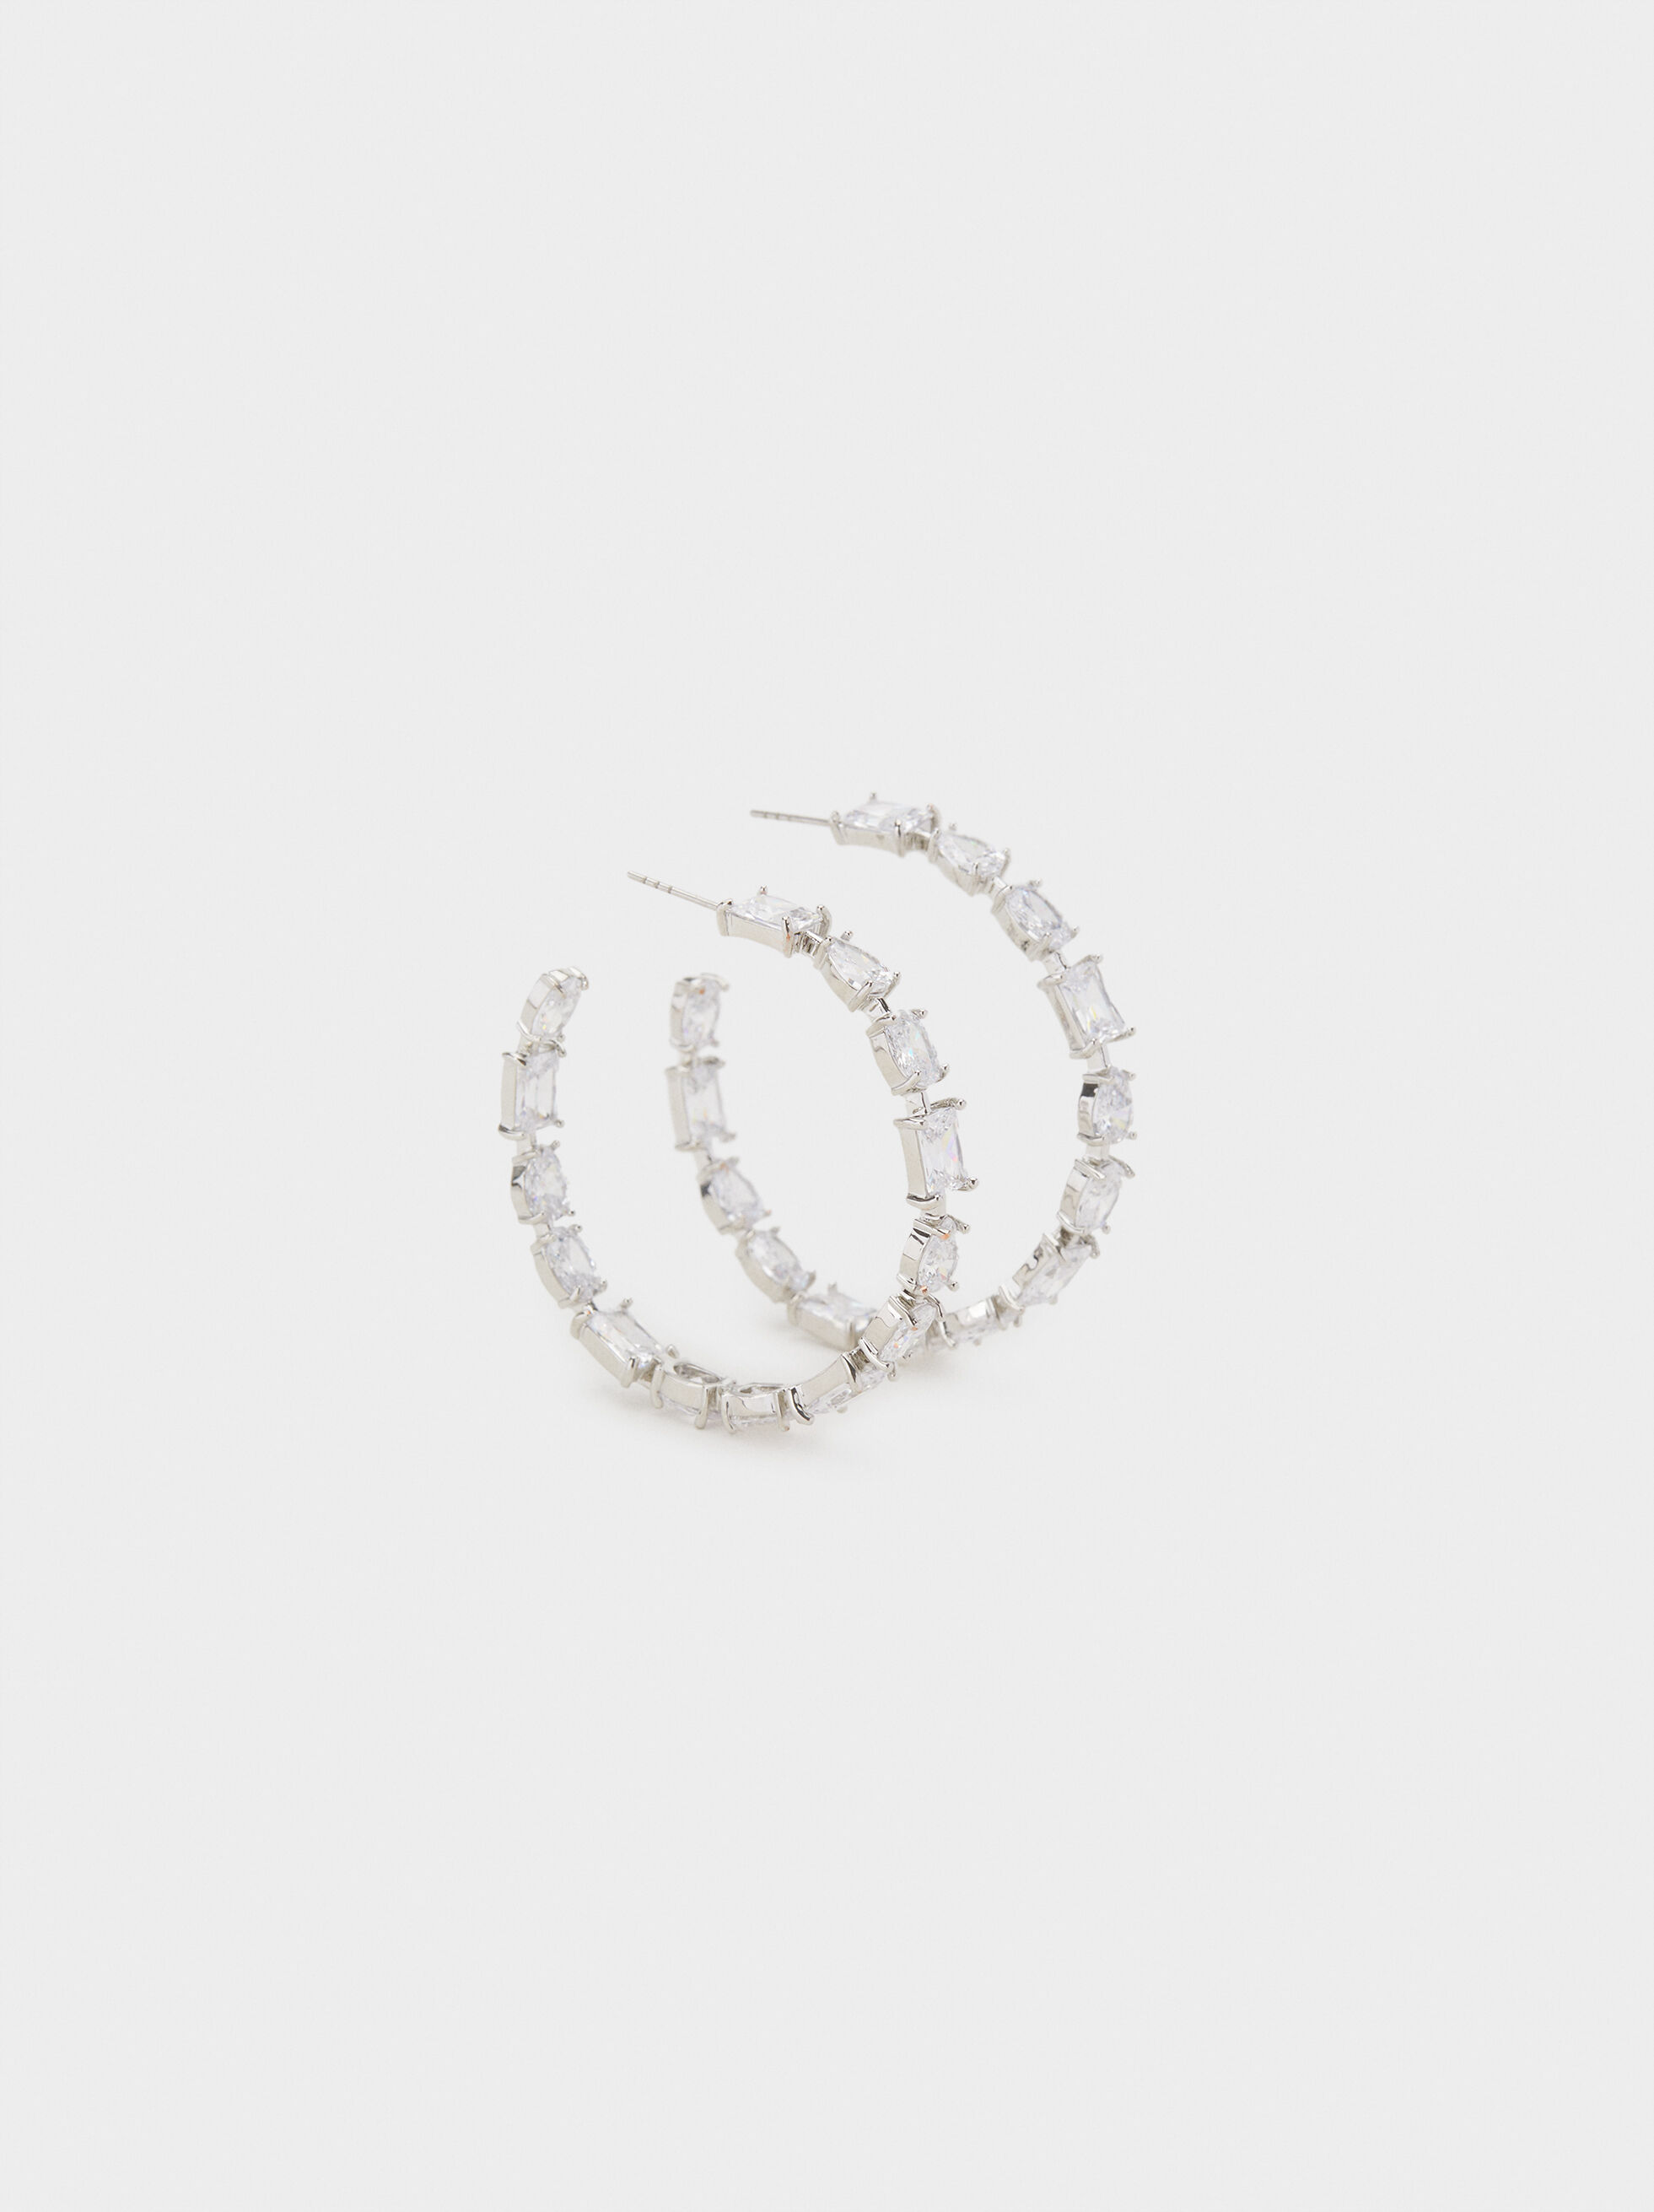 Sparkling Large Hoop Earrings, Silver, hi-res